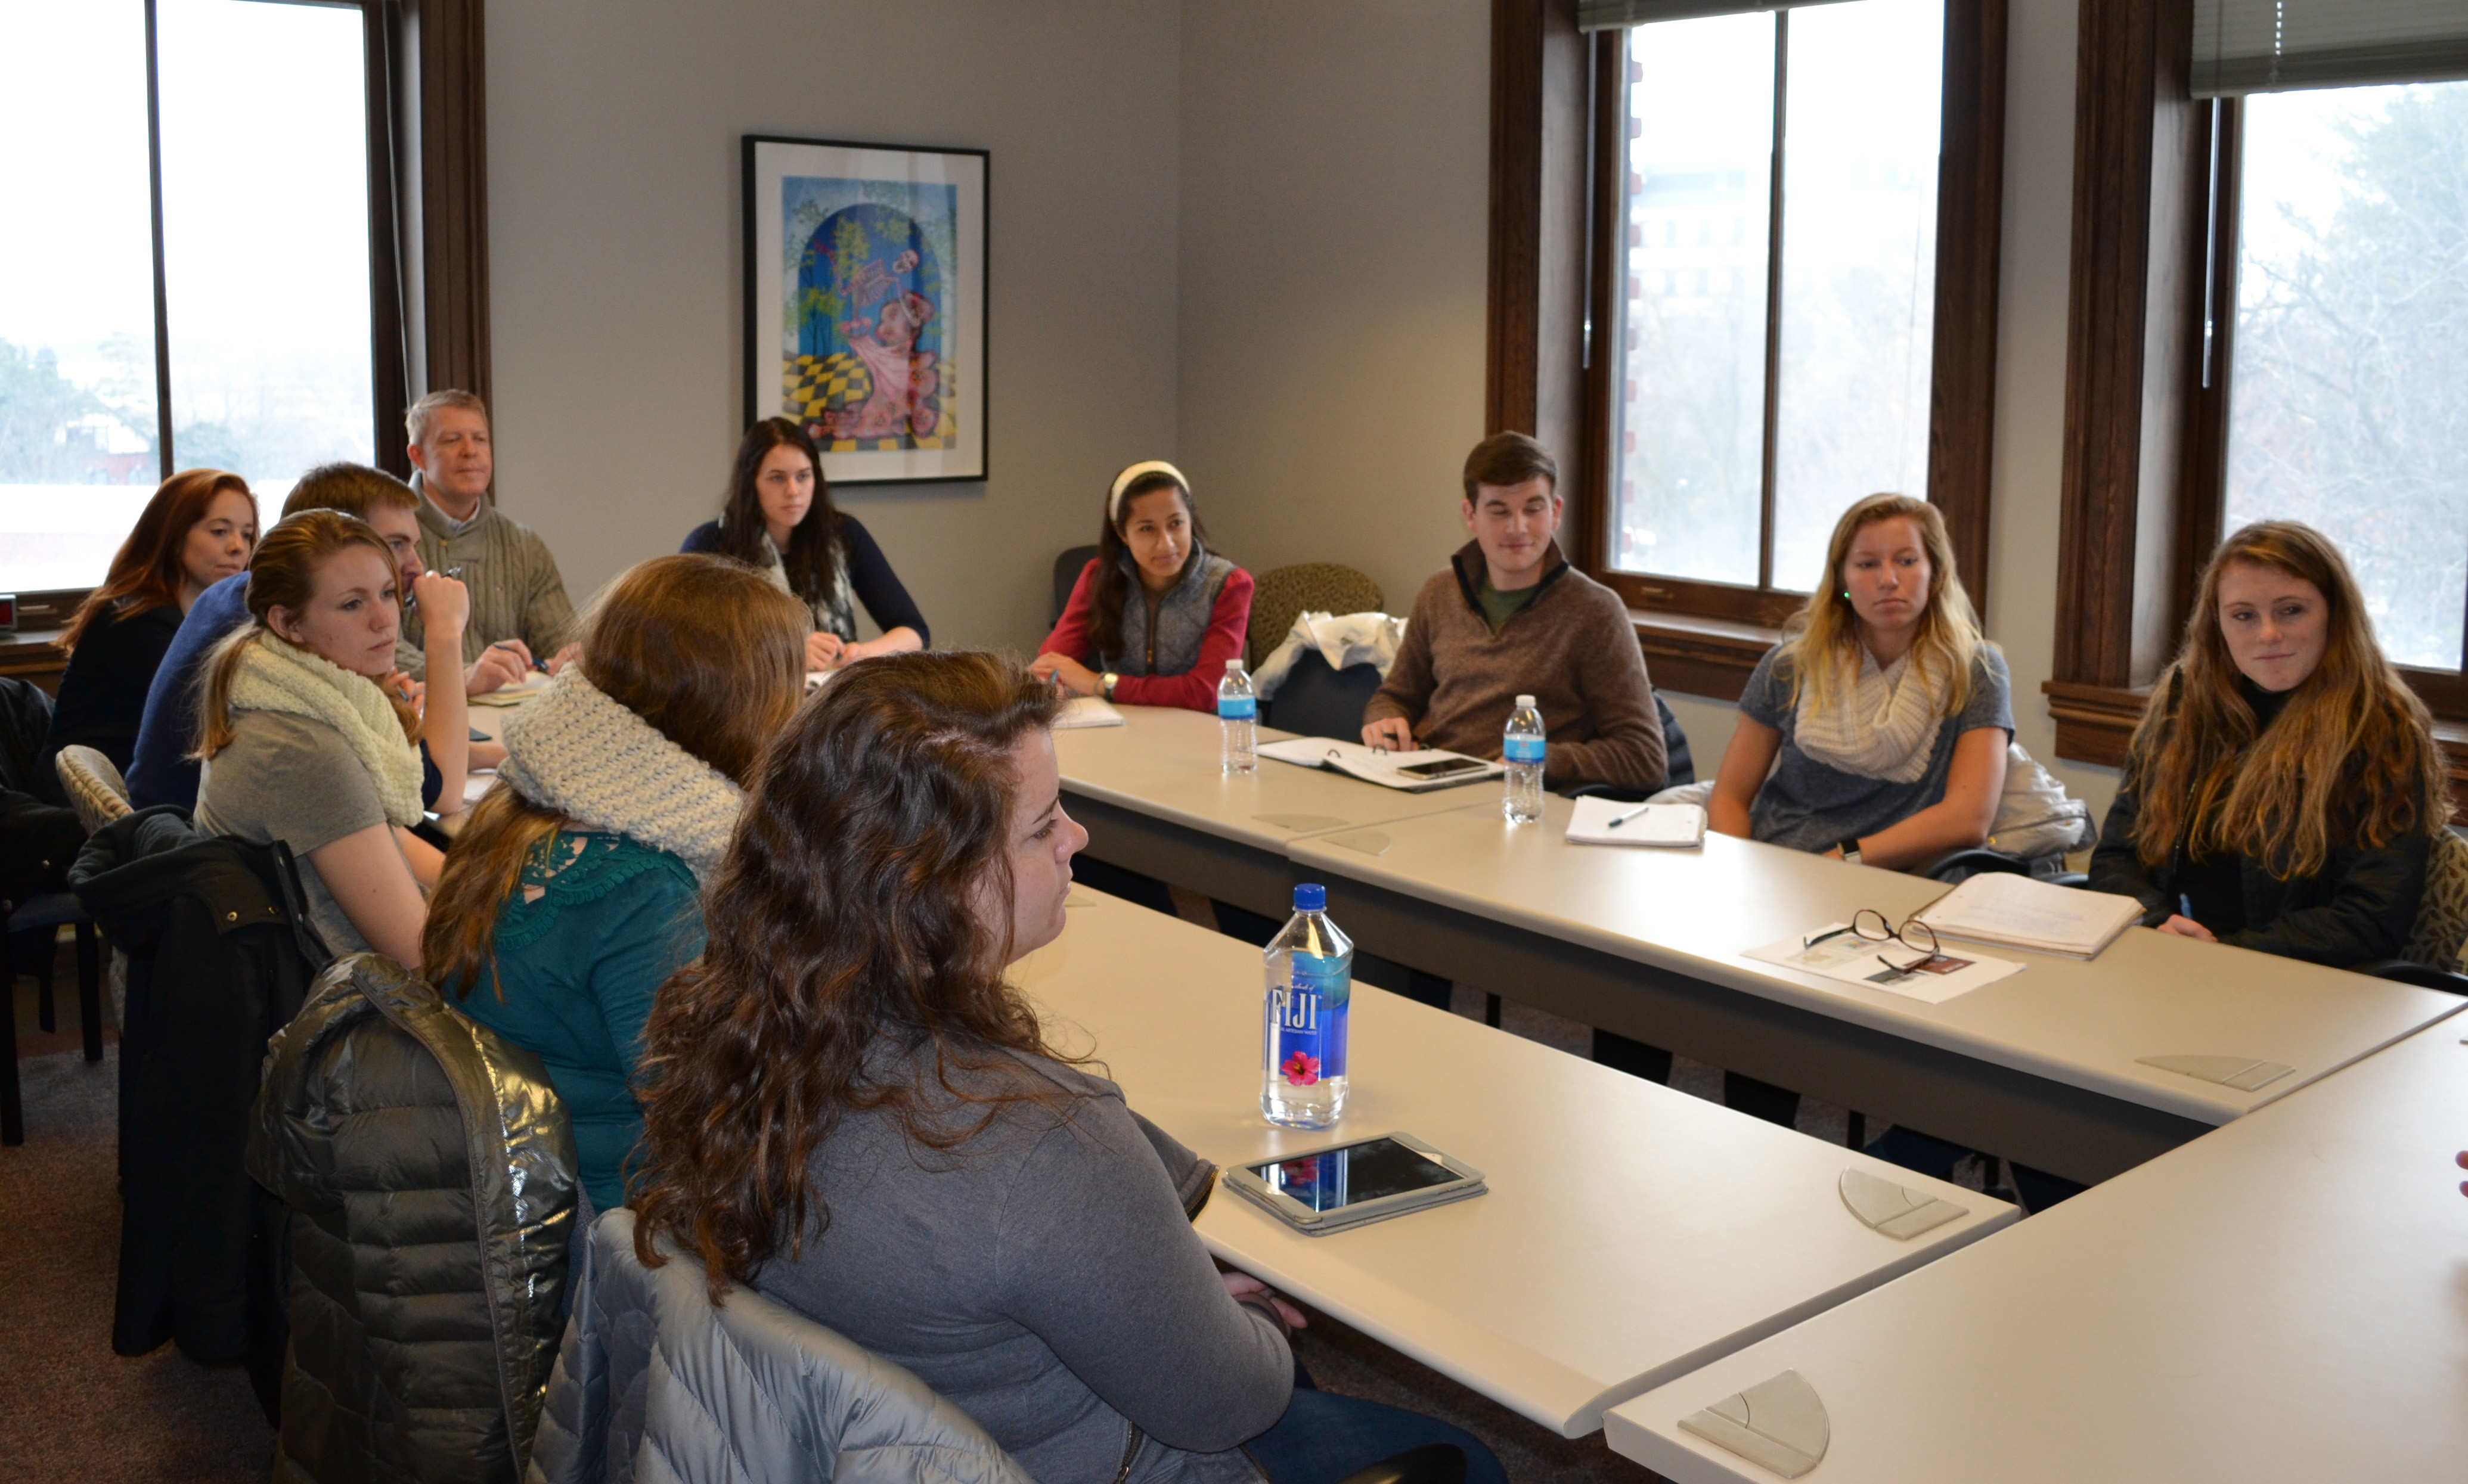 Students from Principia College visited with Dianne Bystrom on Jan. 6 in Catt Hall.